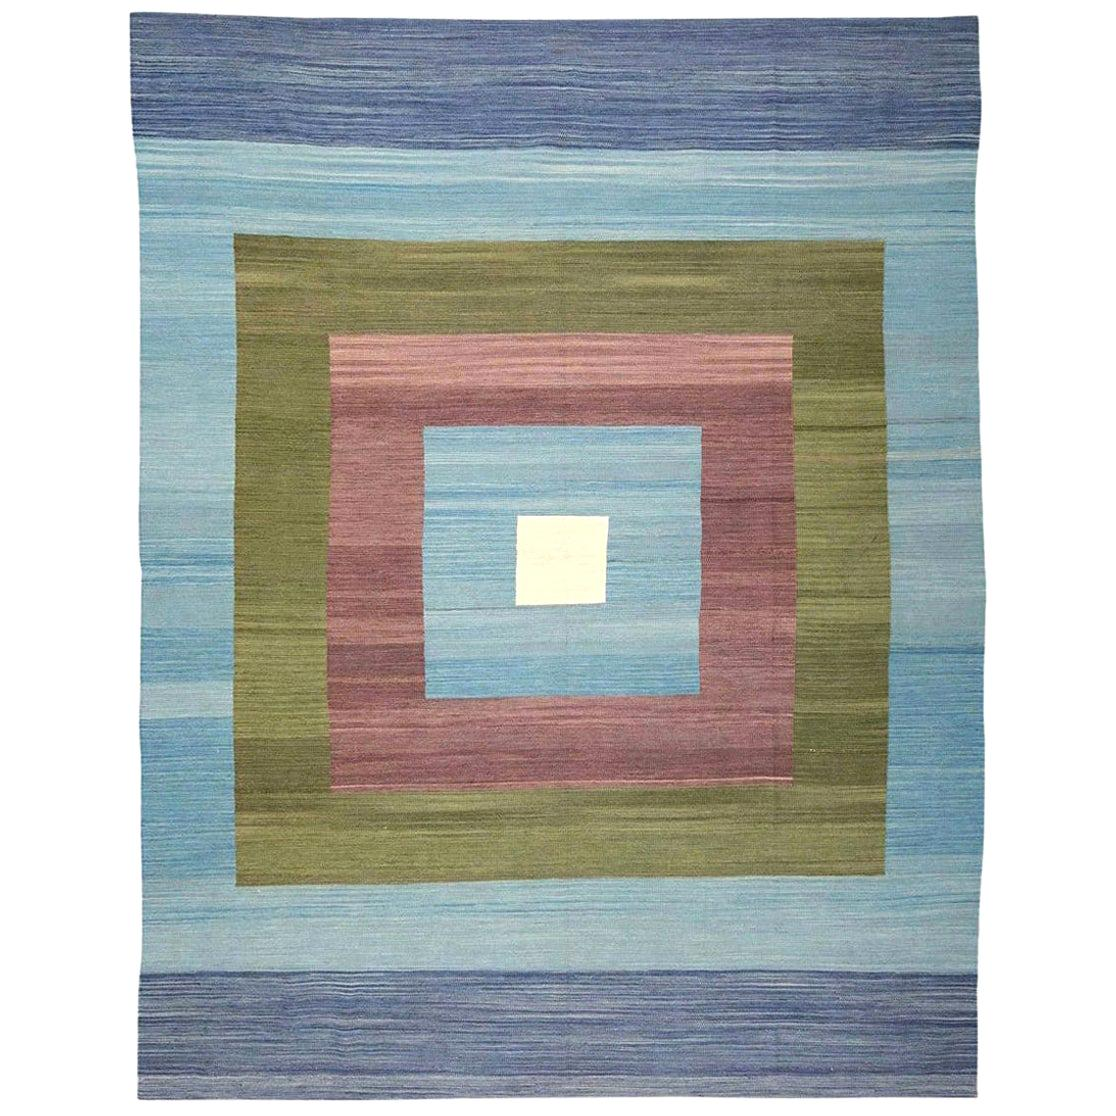 Contemporary Kilim, Blue and Green Design over Wool. 3,35 x 2,60 m